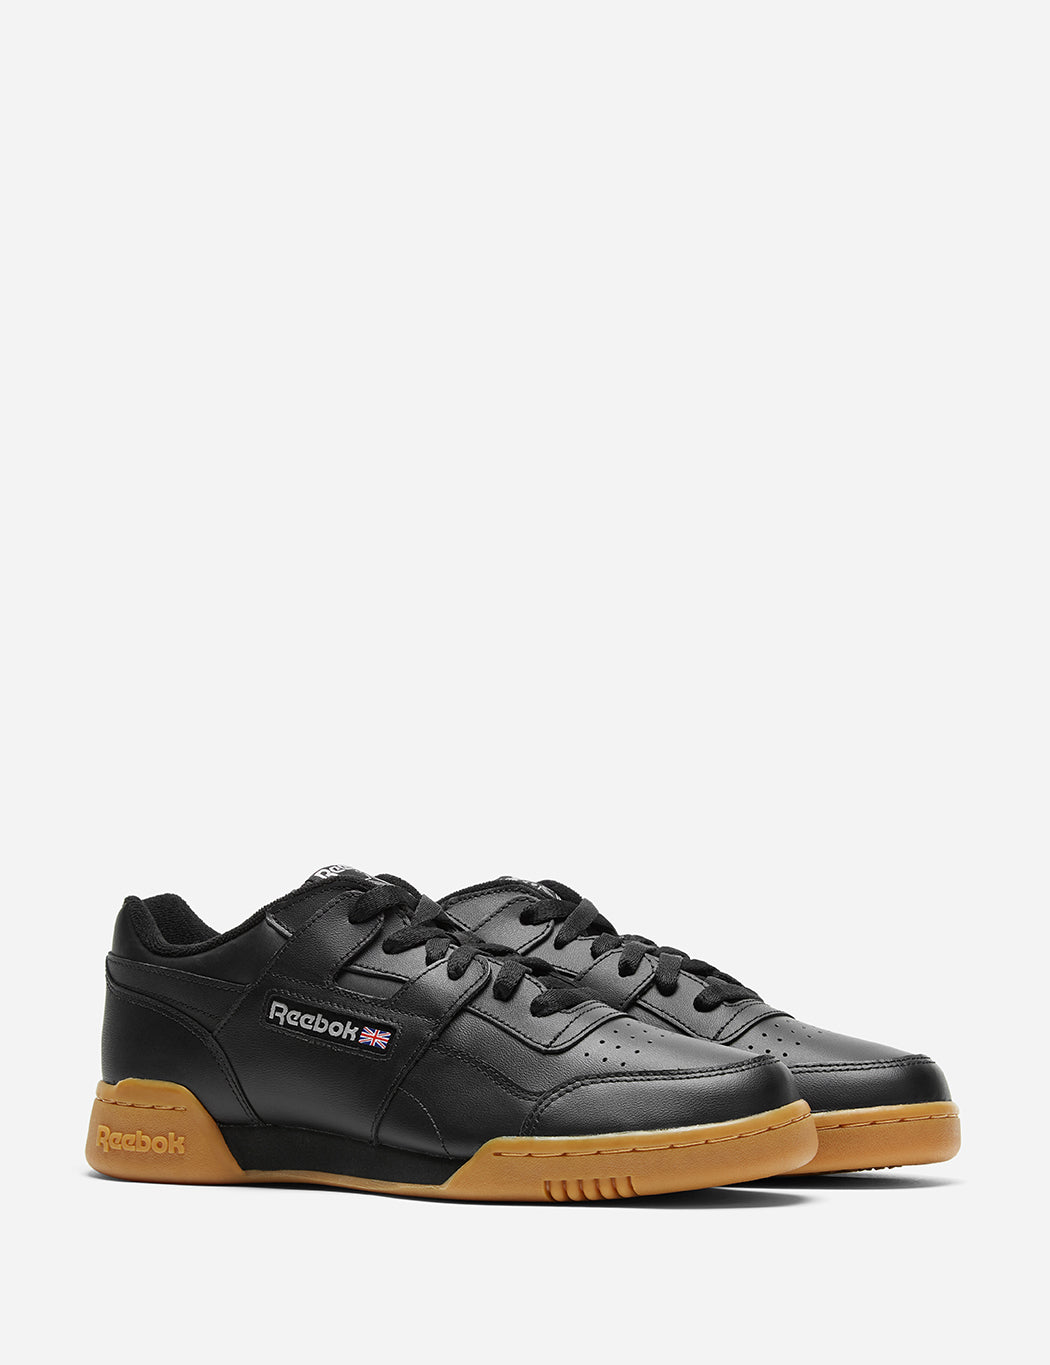 a52b3f8c3d Reebok Workout Plus Gum Sole (CN2127) - Black/Carbon/Classic Red